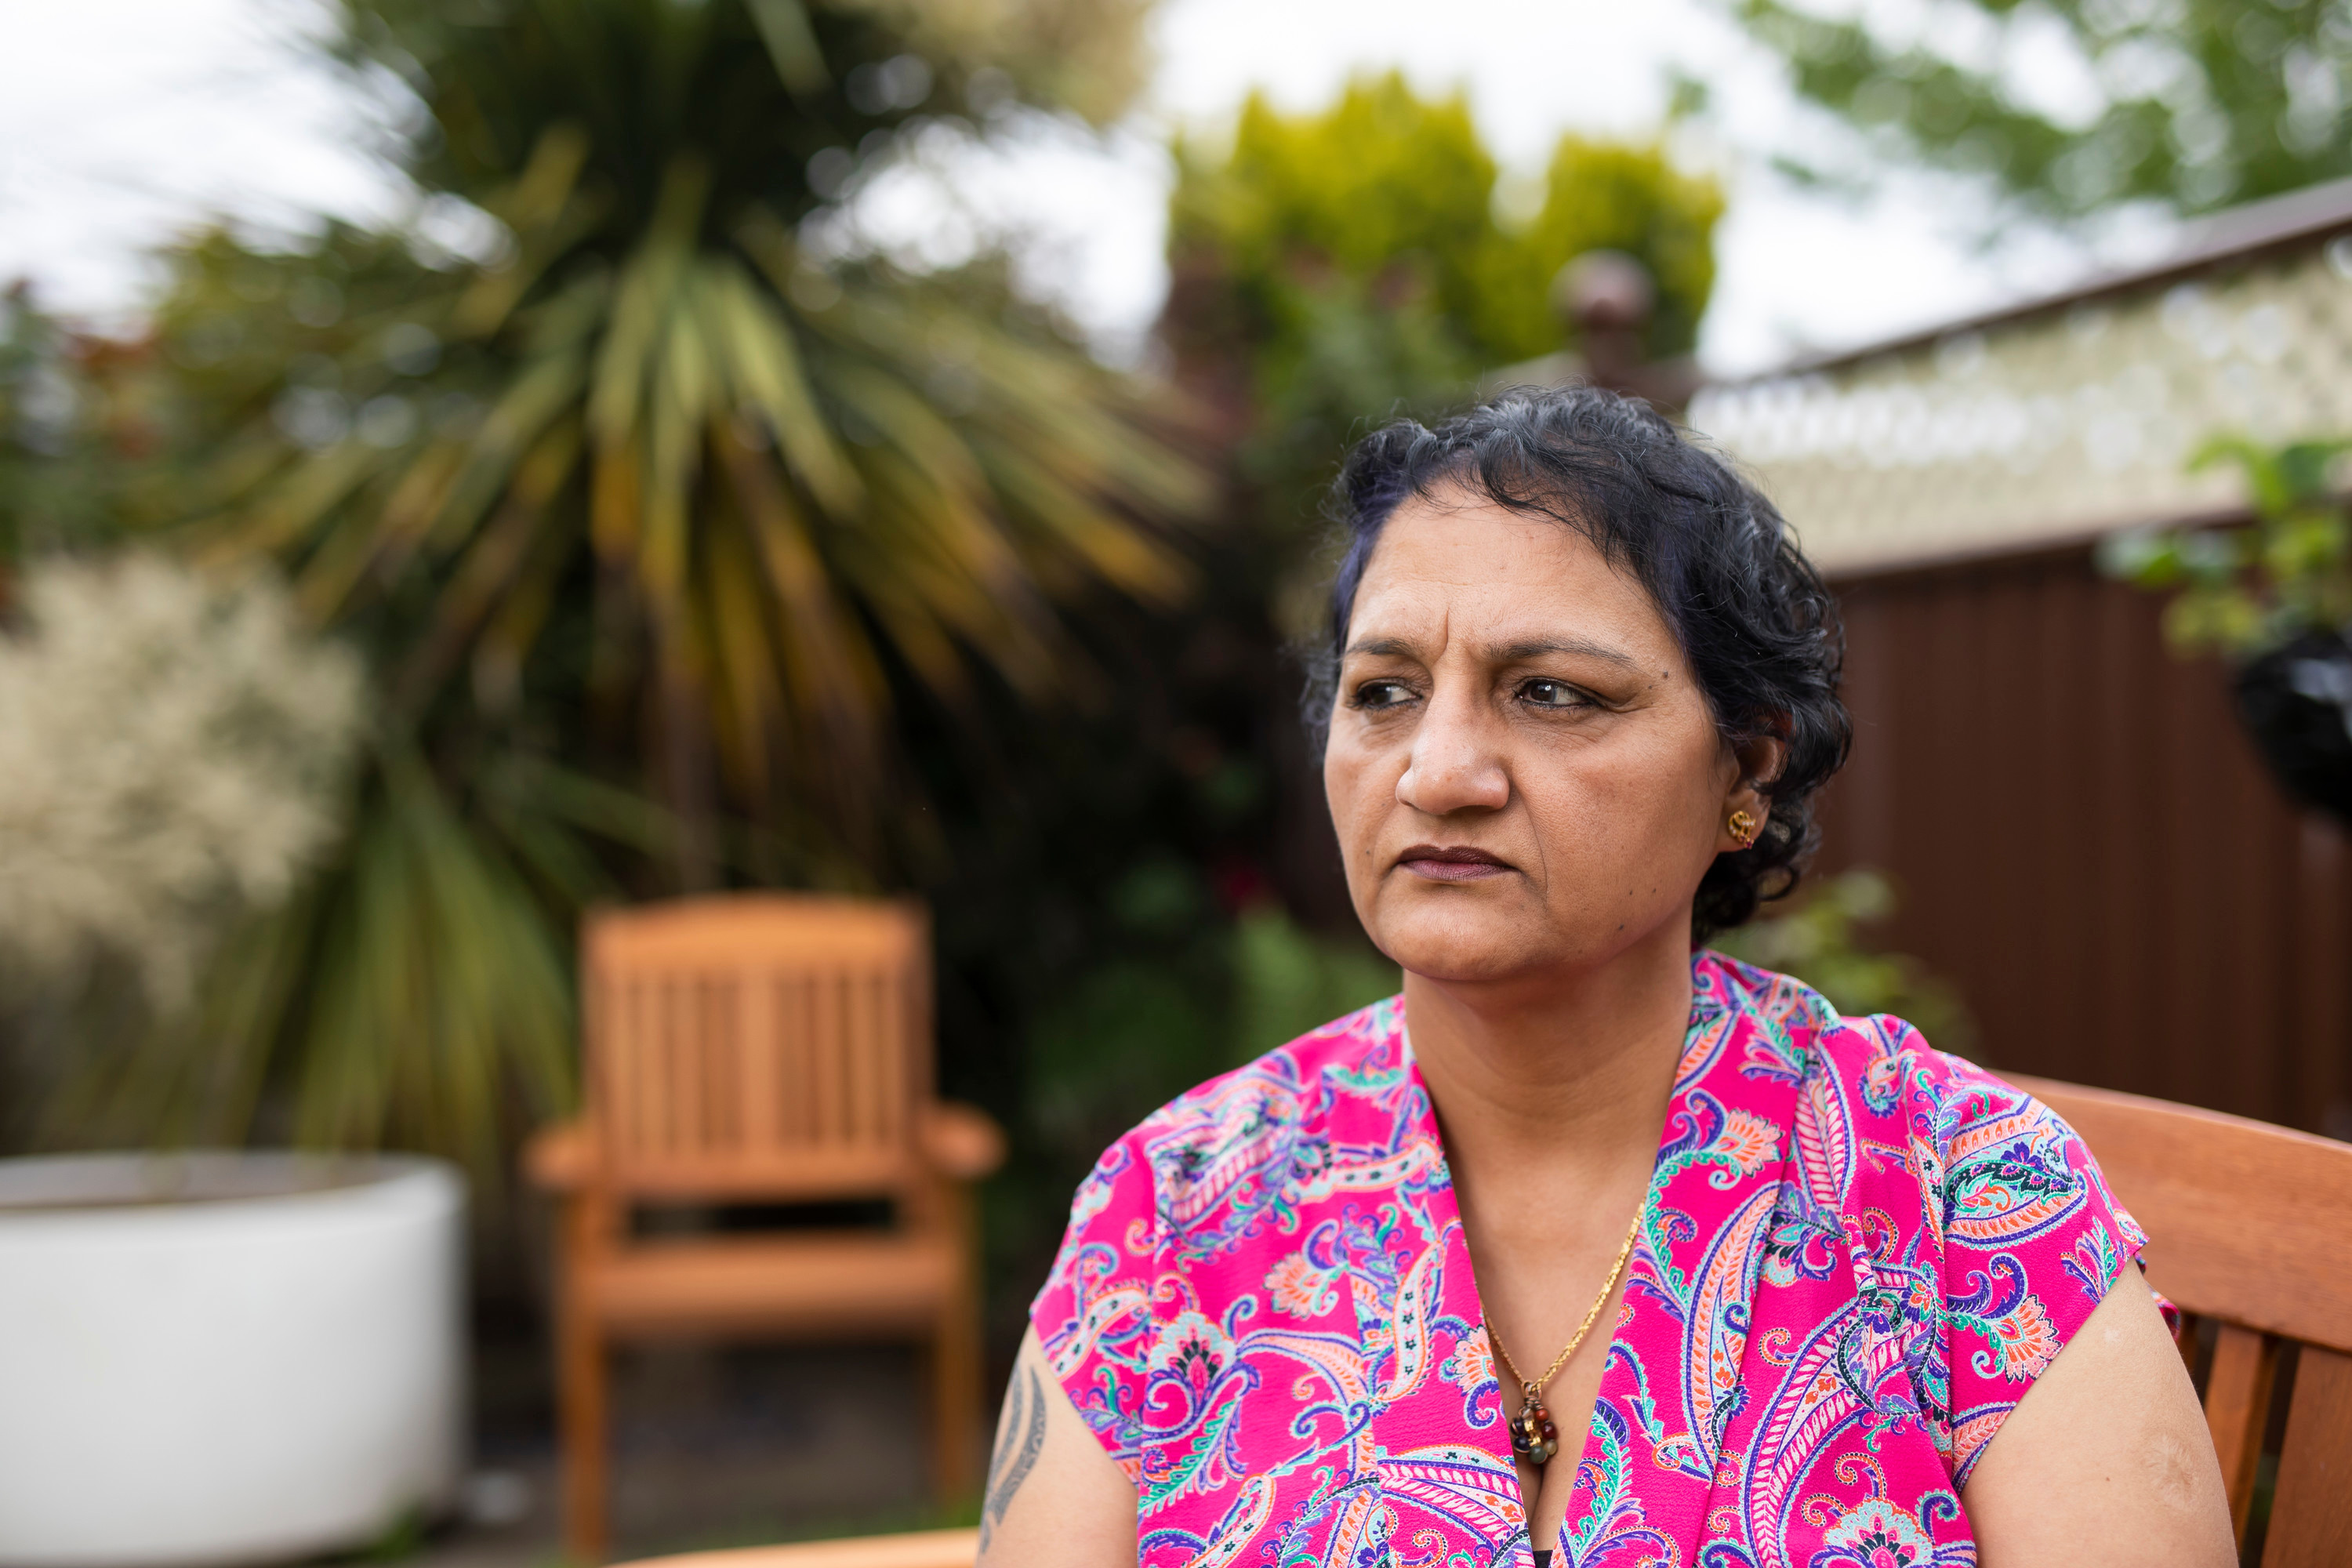 The 59-year-old is now cancer free but has to pay extra for insurance due to her previous illness